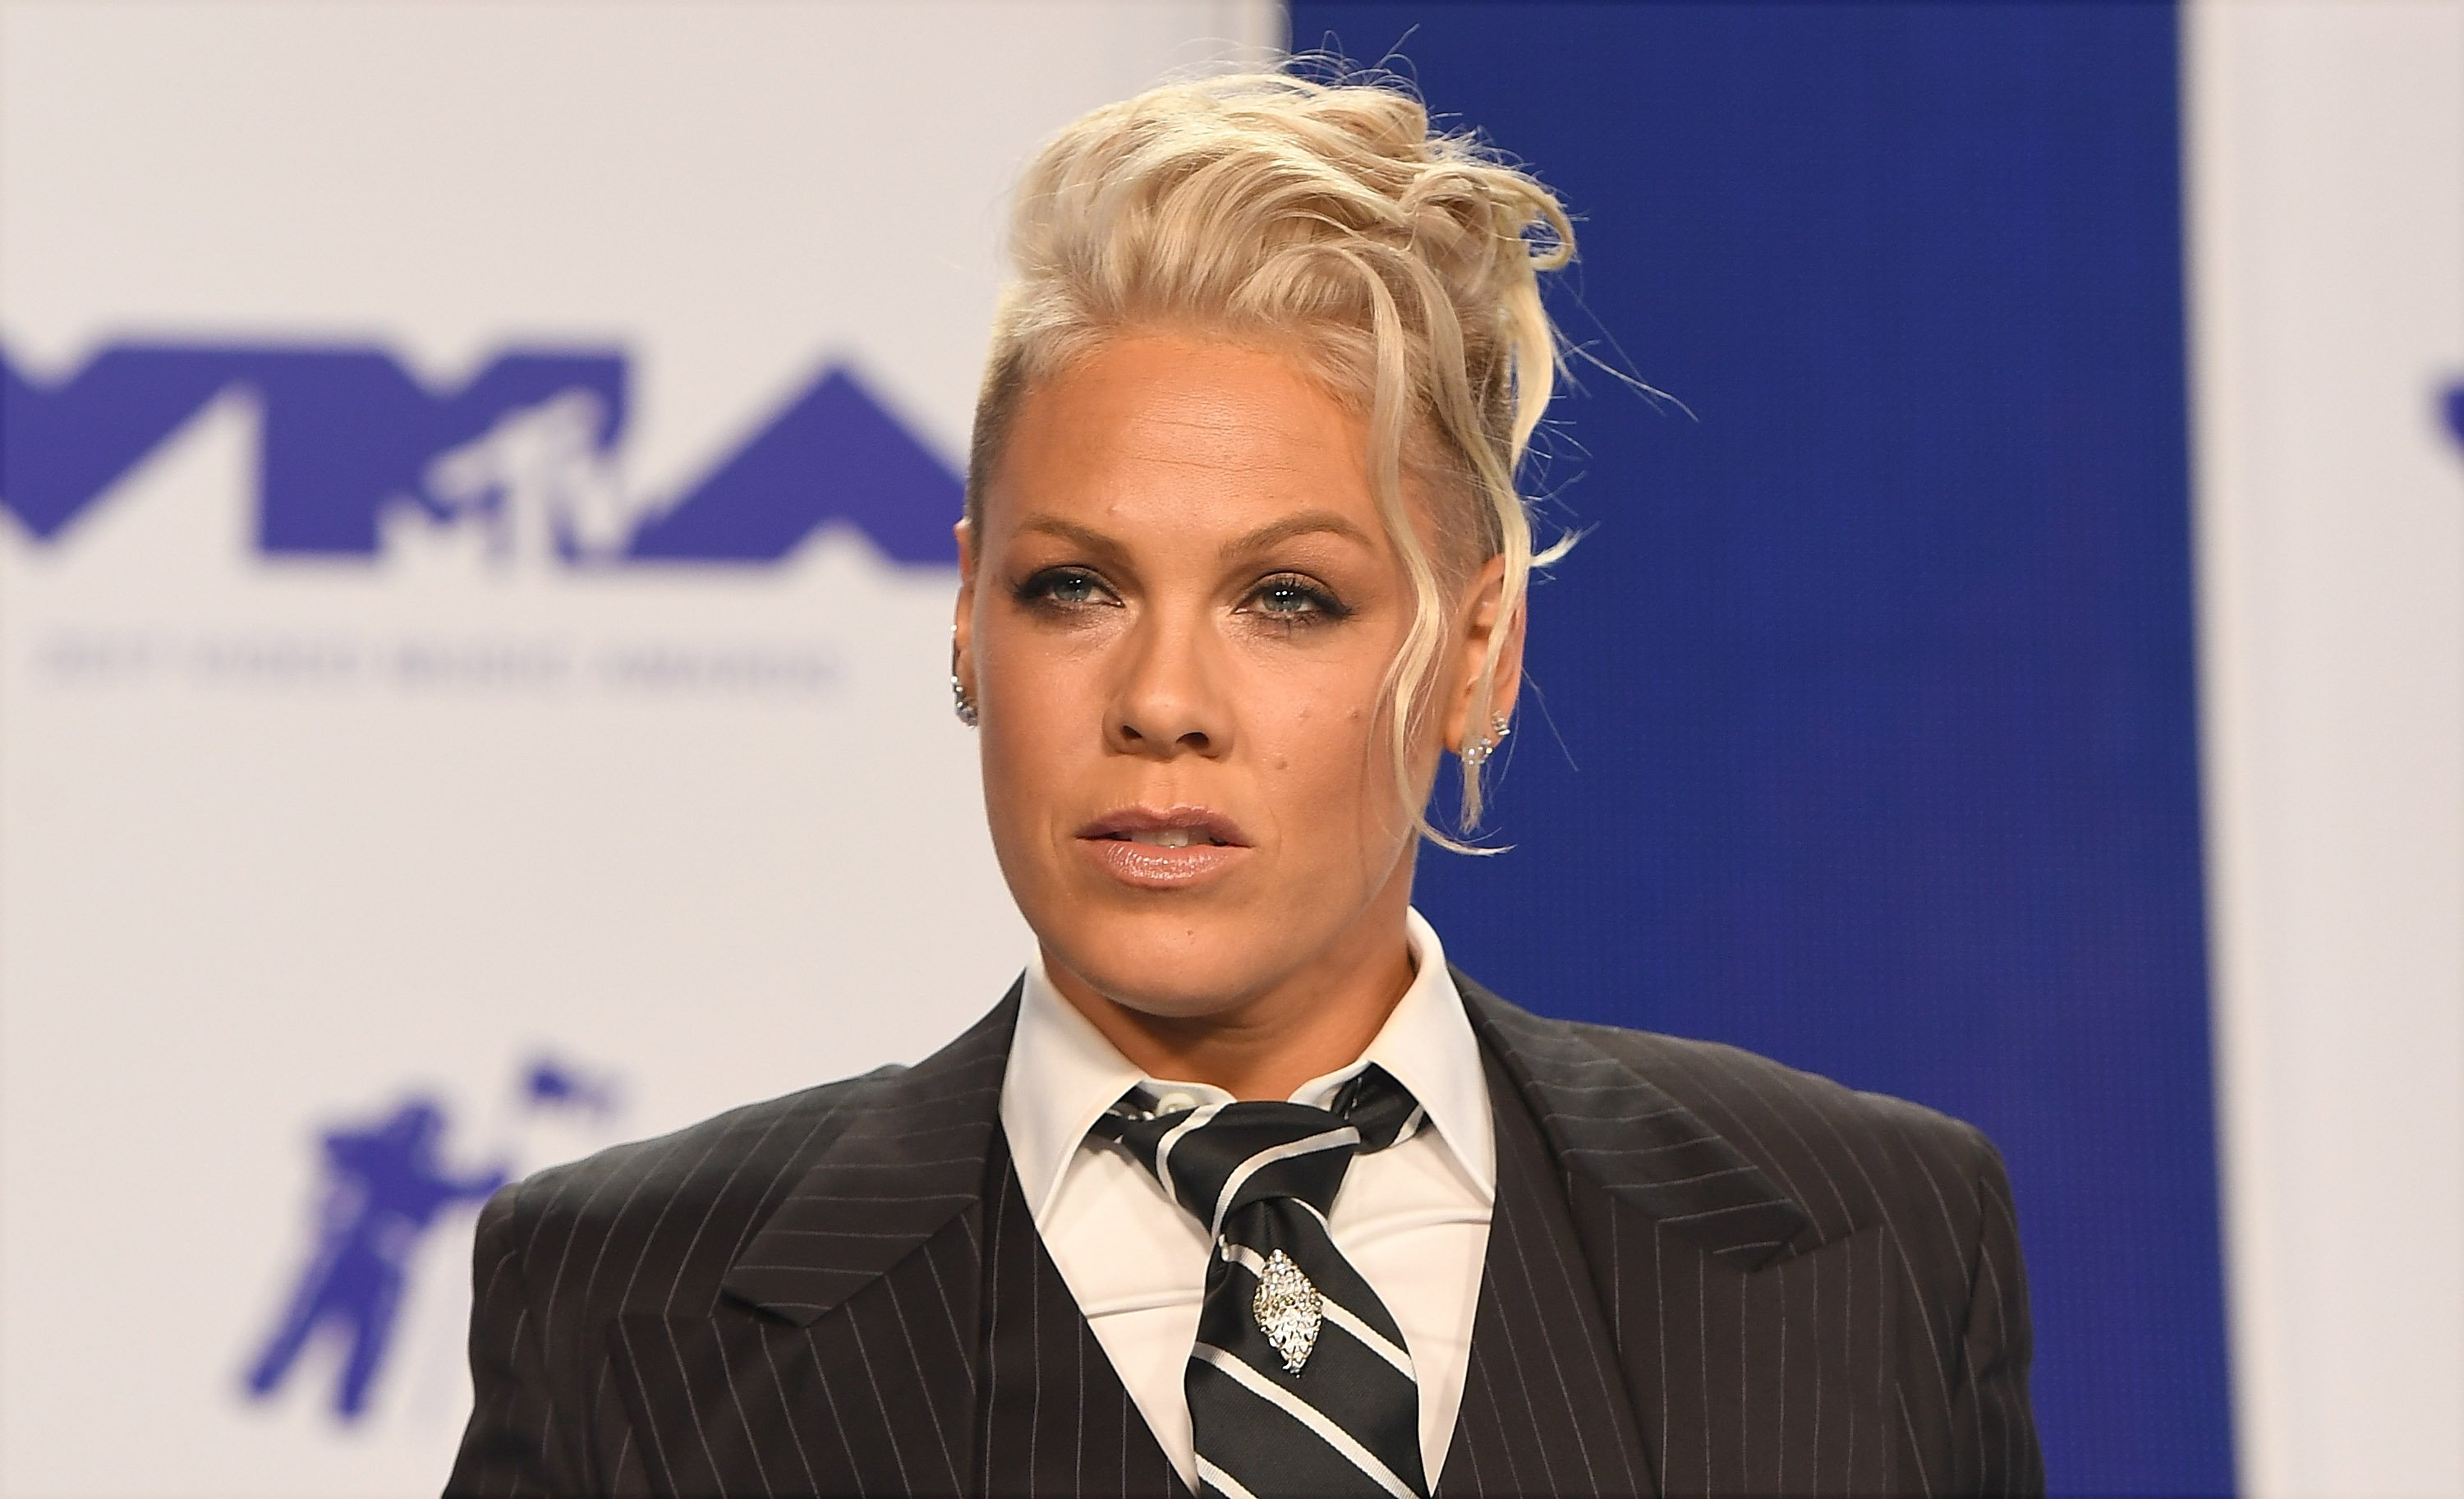 Singer Pink at the 2017 MTV Video Music Awards at The Forum on August 27, 2017 in Inglewood, California | Photo: C Flanigan/Getty Images